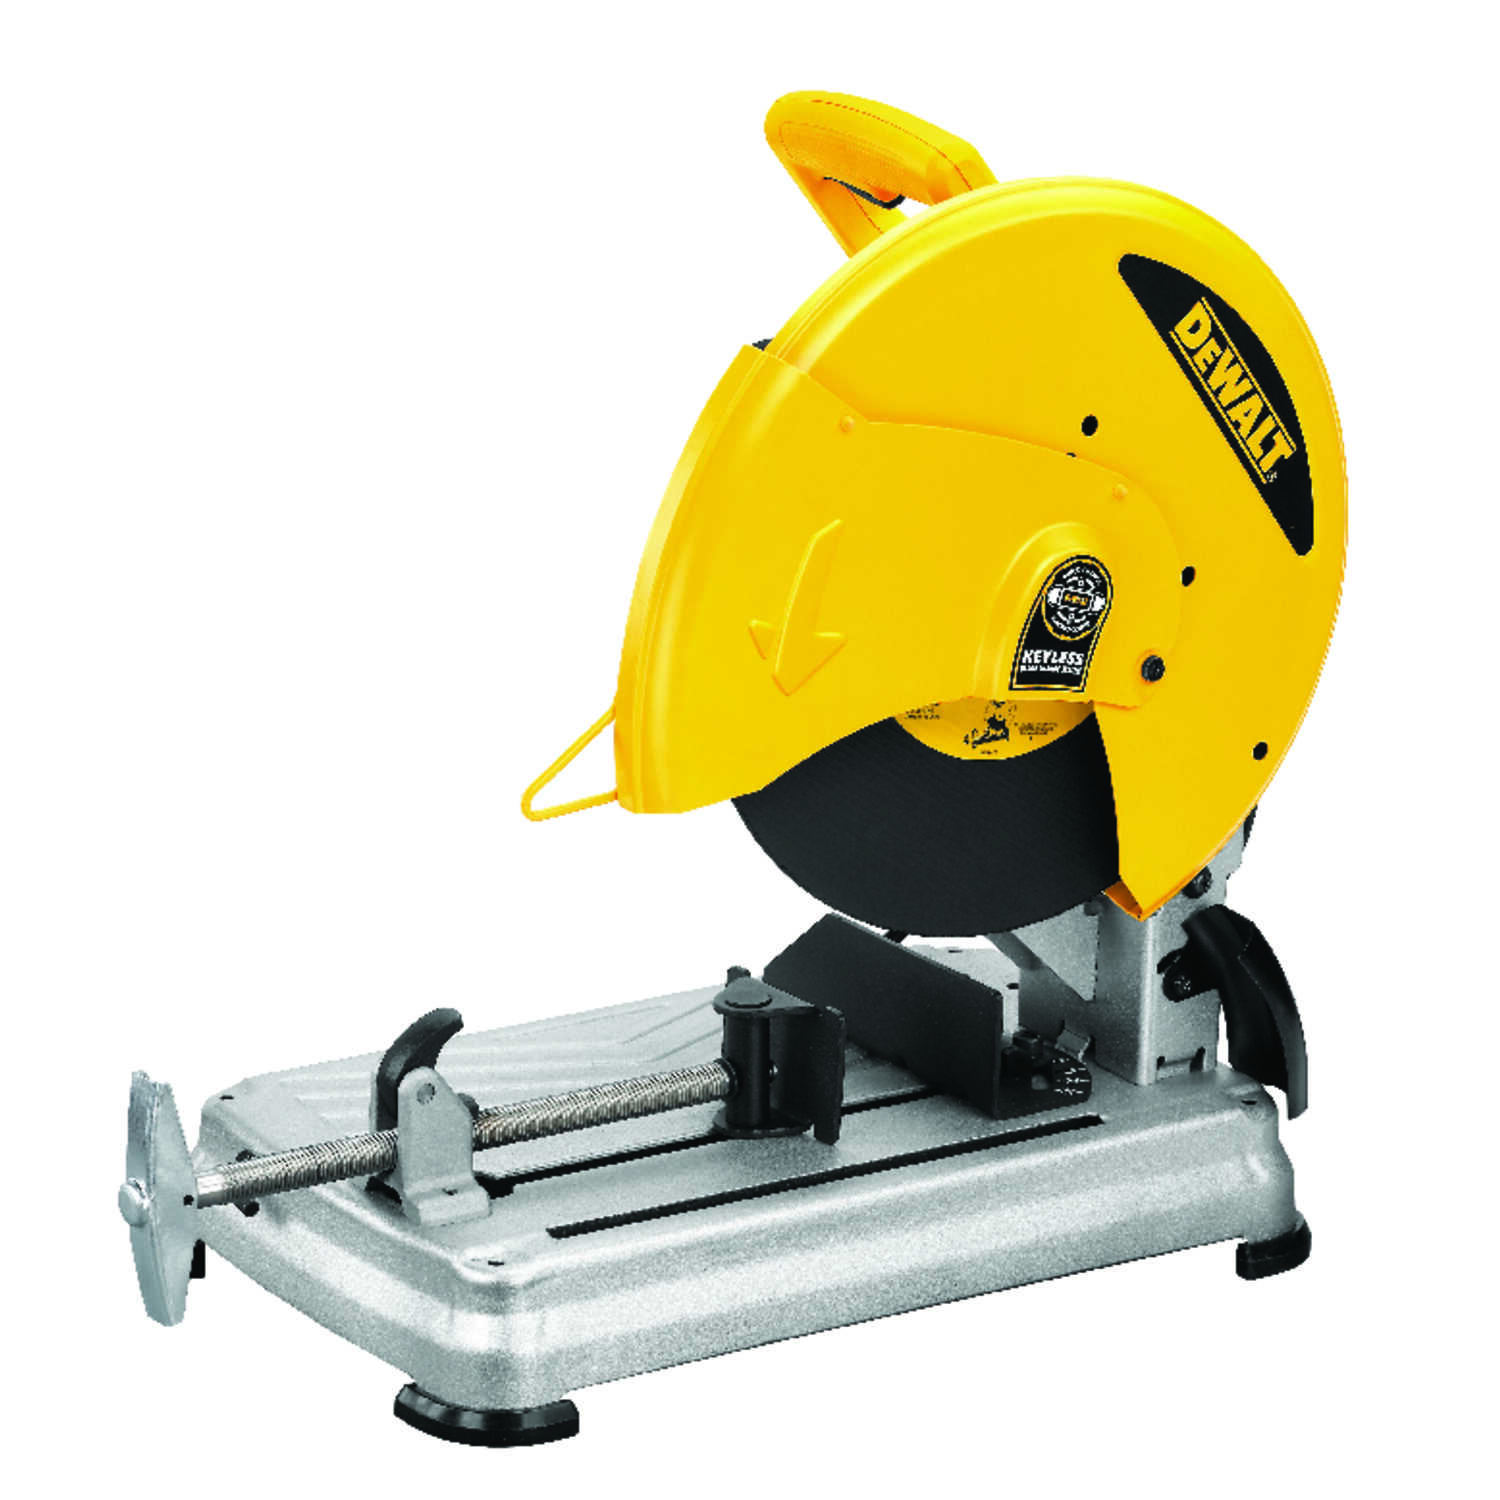 DeWalt  14 in. Corded  Chop Saw  15 amps 5-1/2 hp 4000 rpm